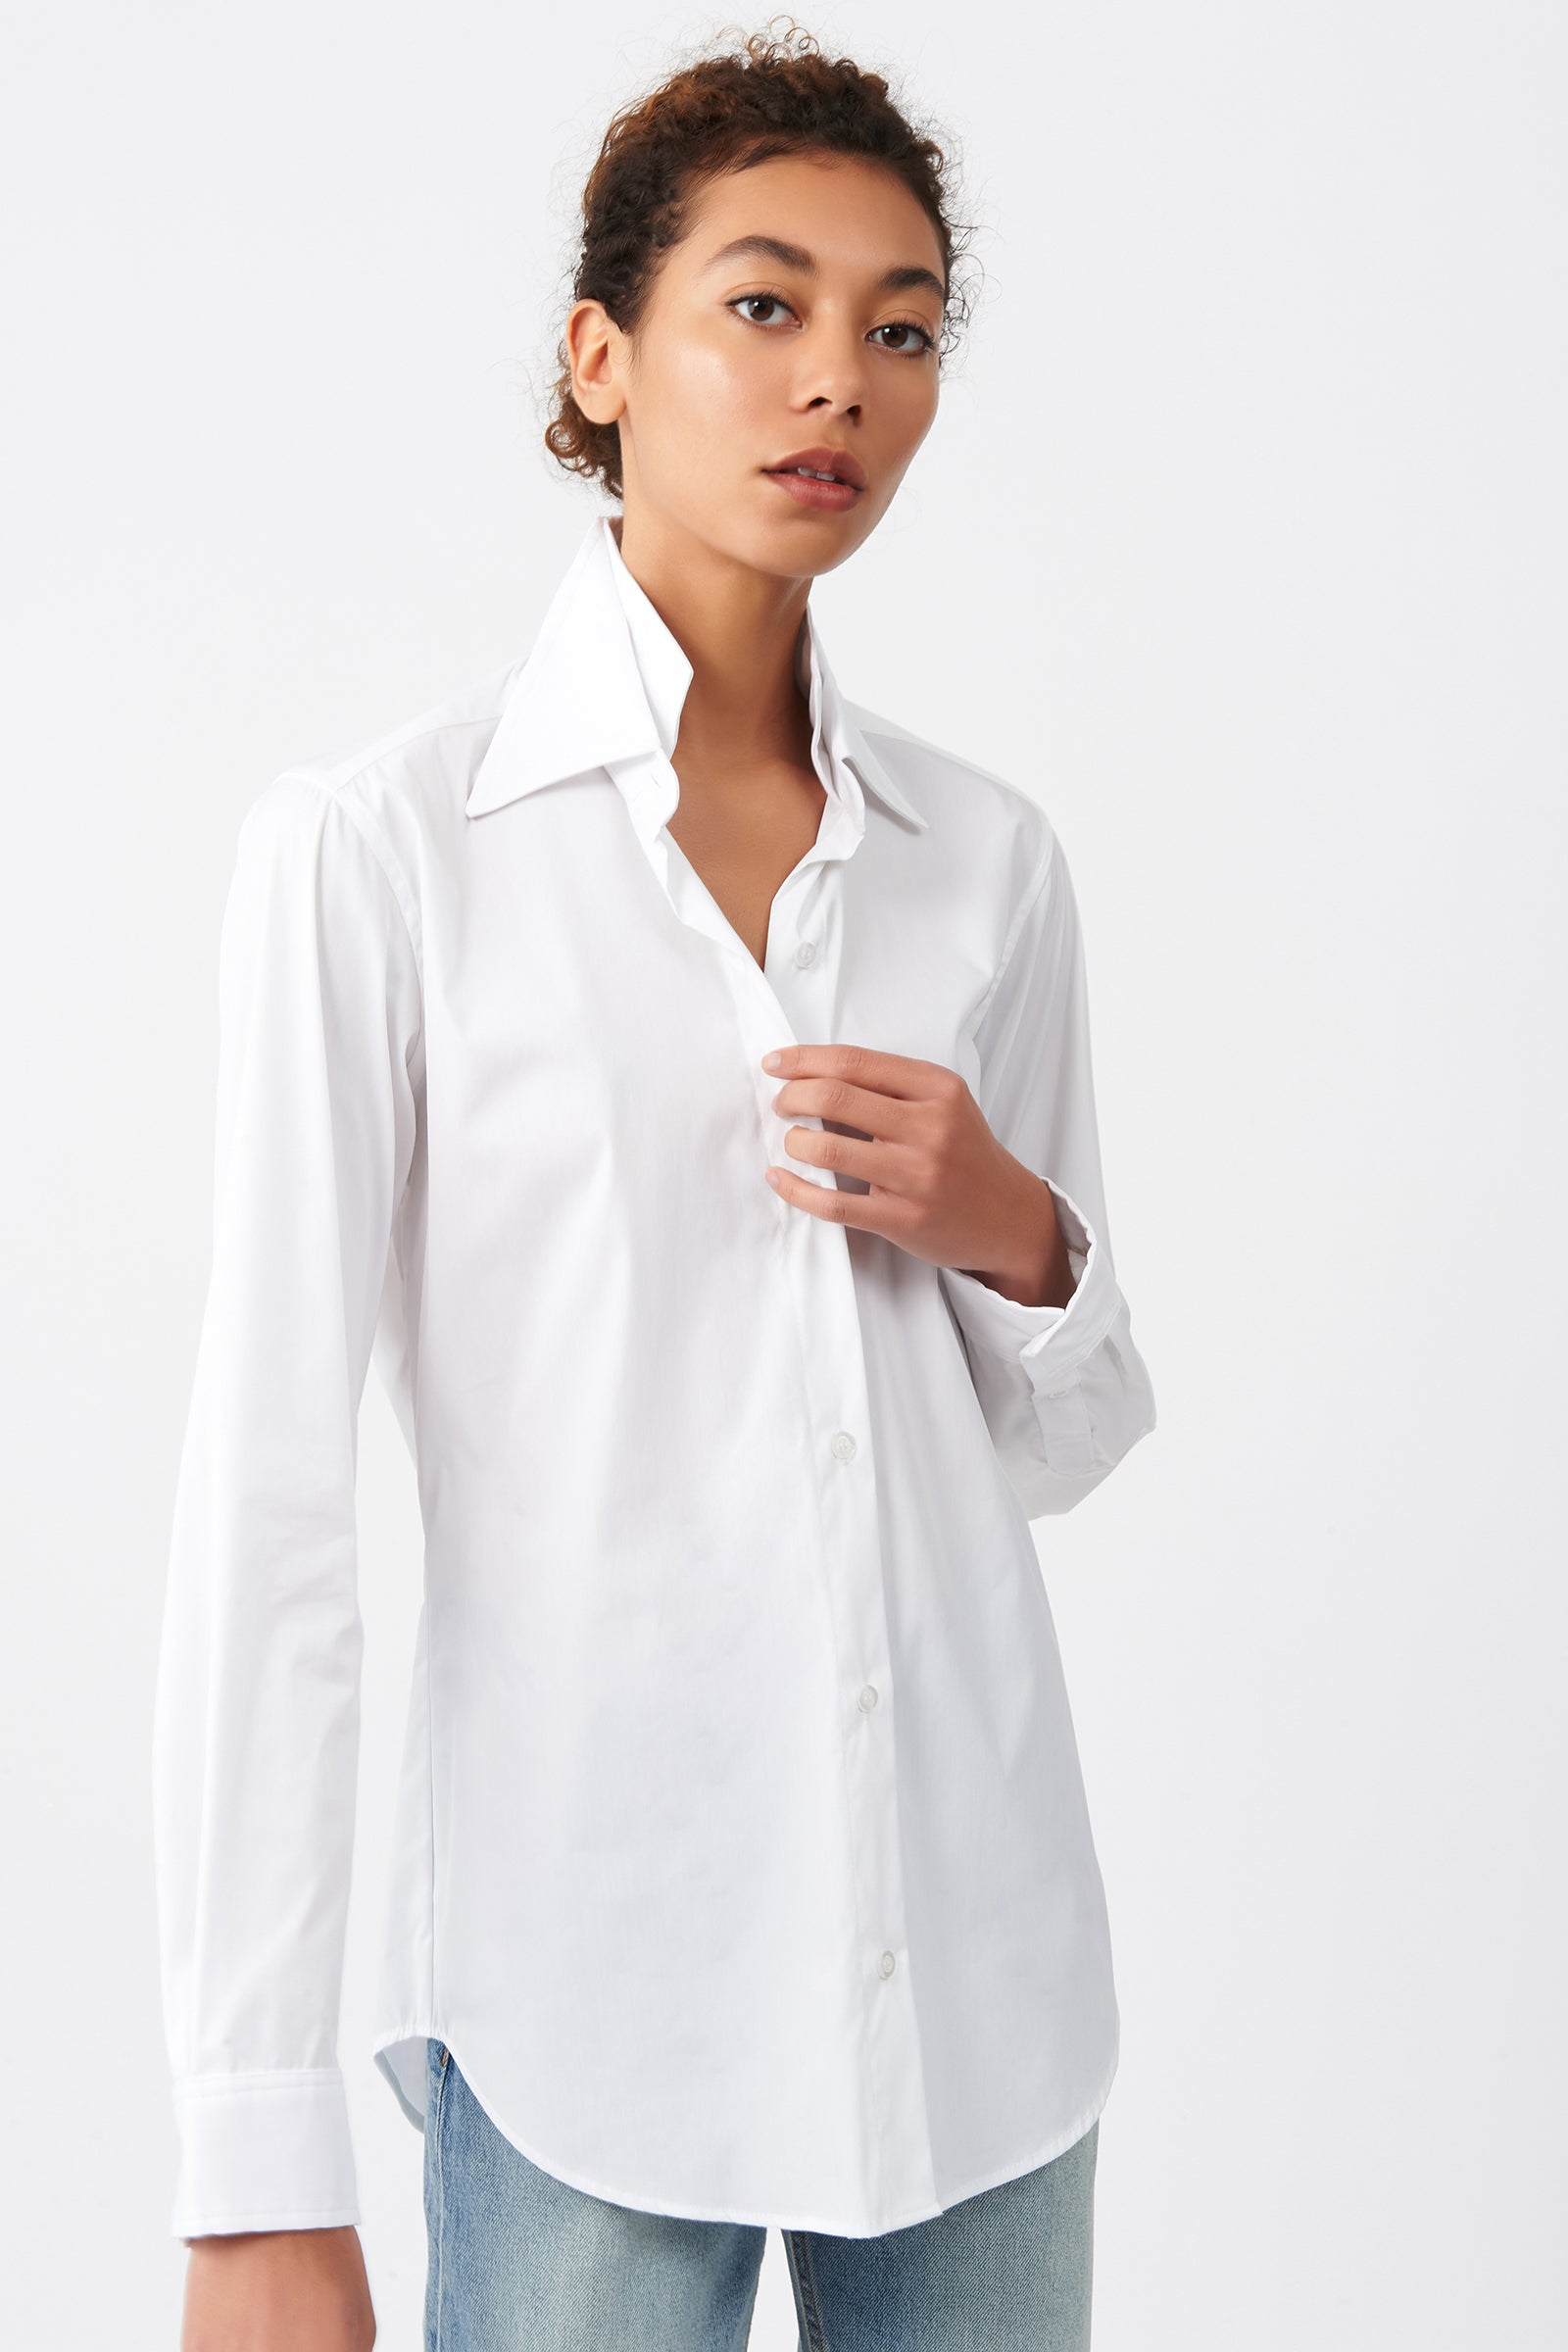 Kal Rieman Double Collar Shirt in White Cotton on Model Front Alternate View